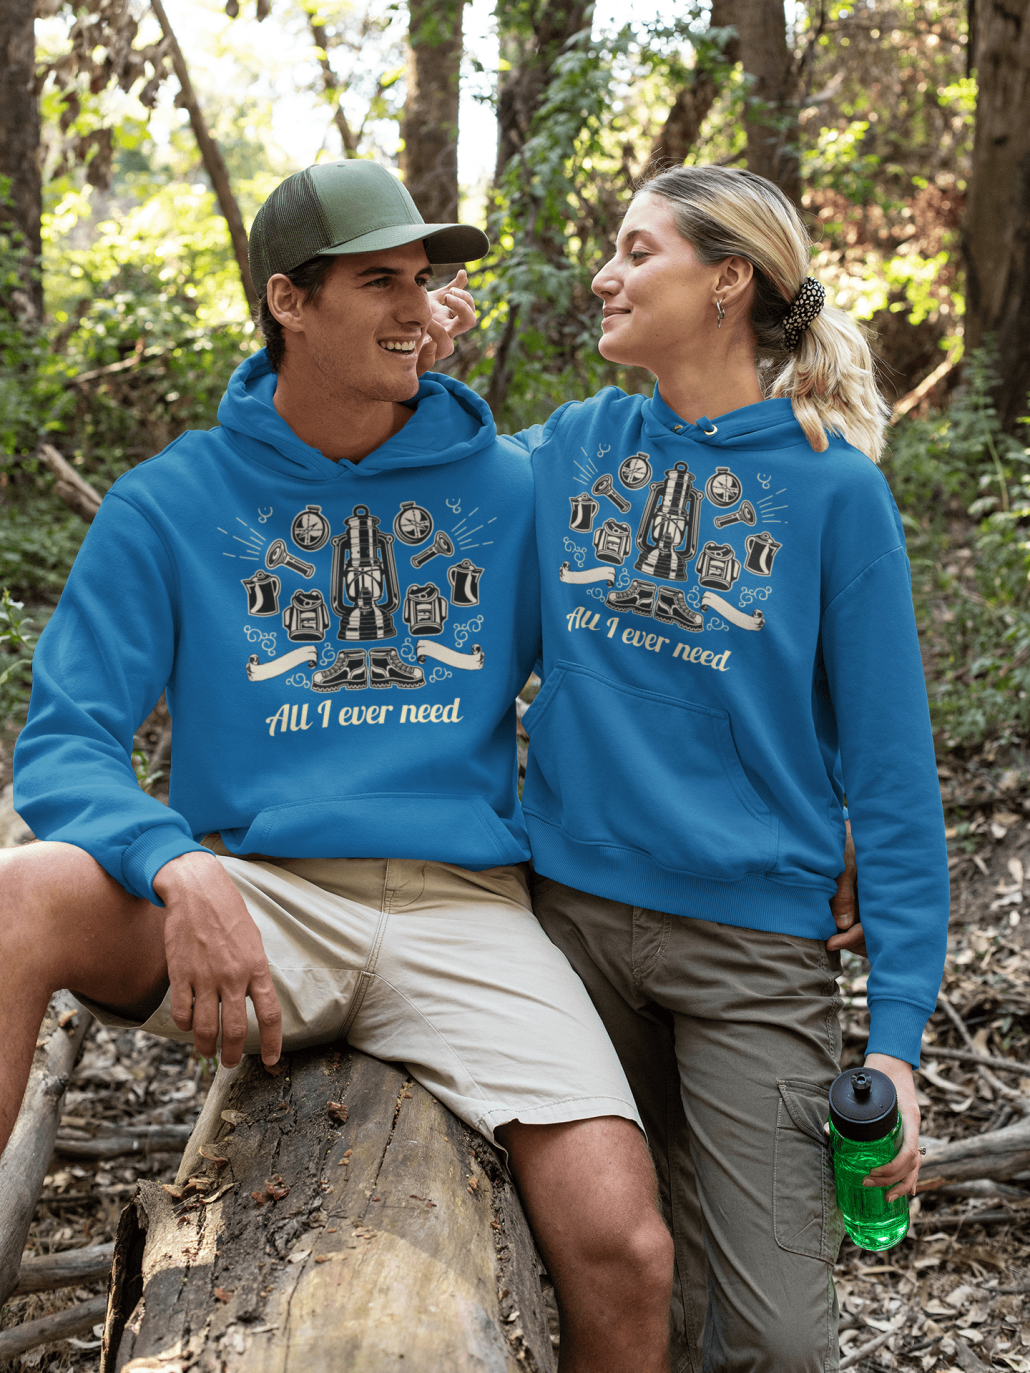 Matching hoodies with camping design